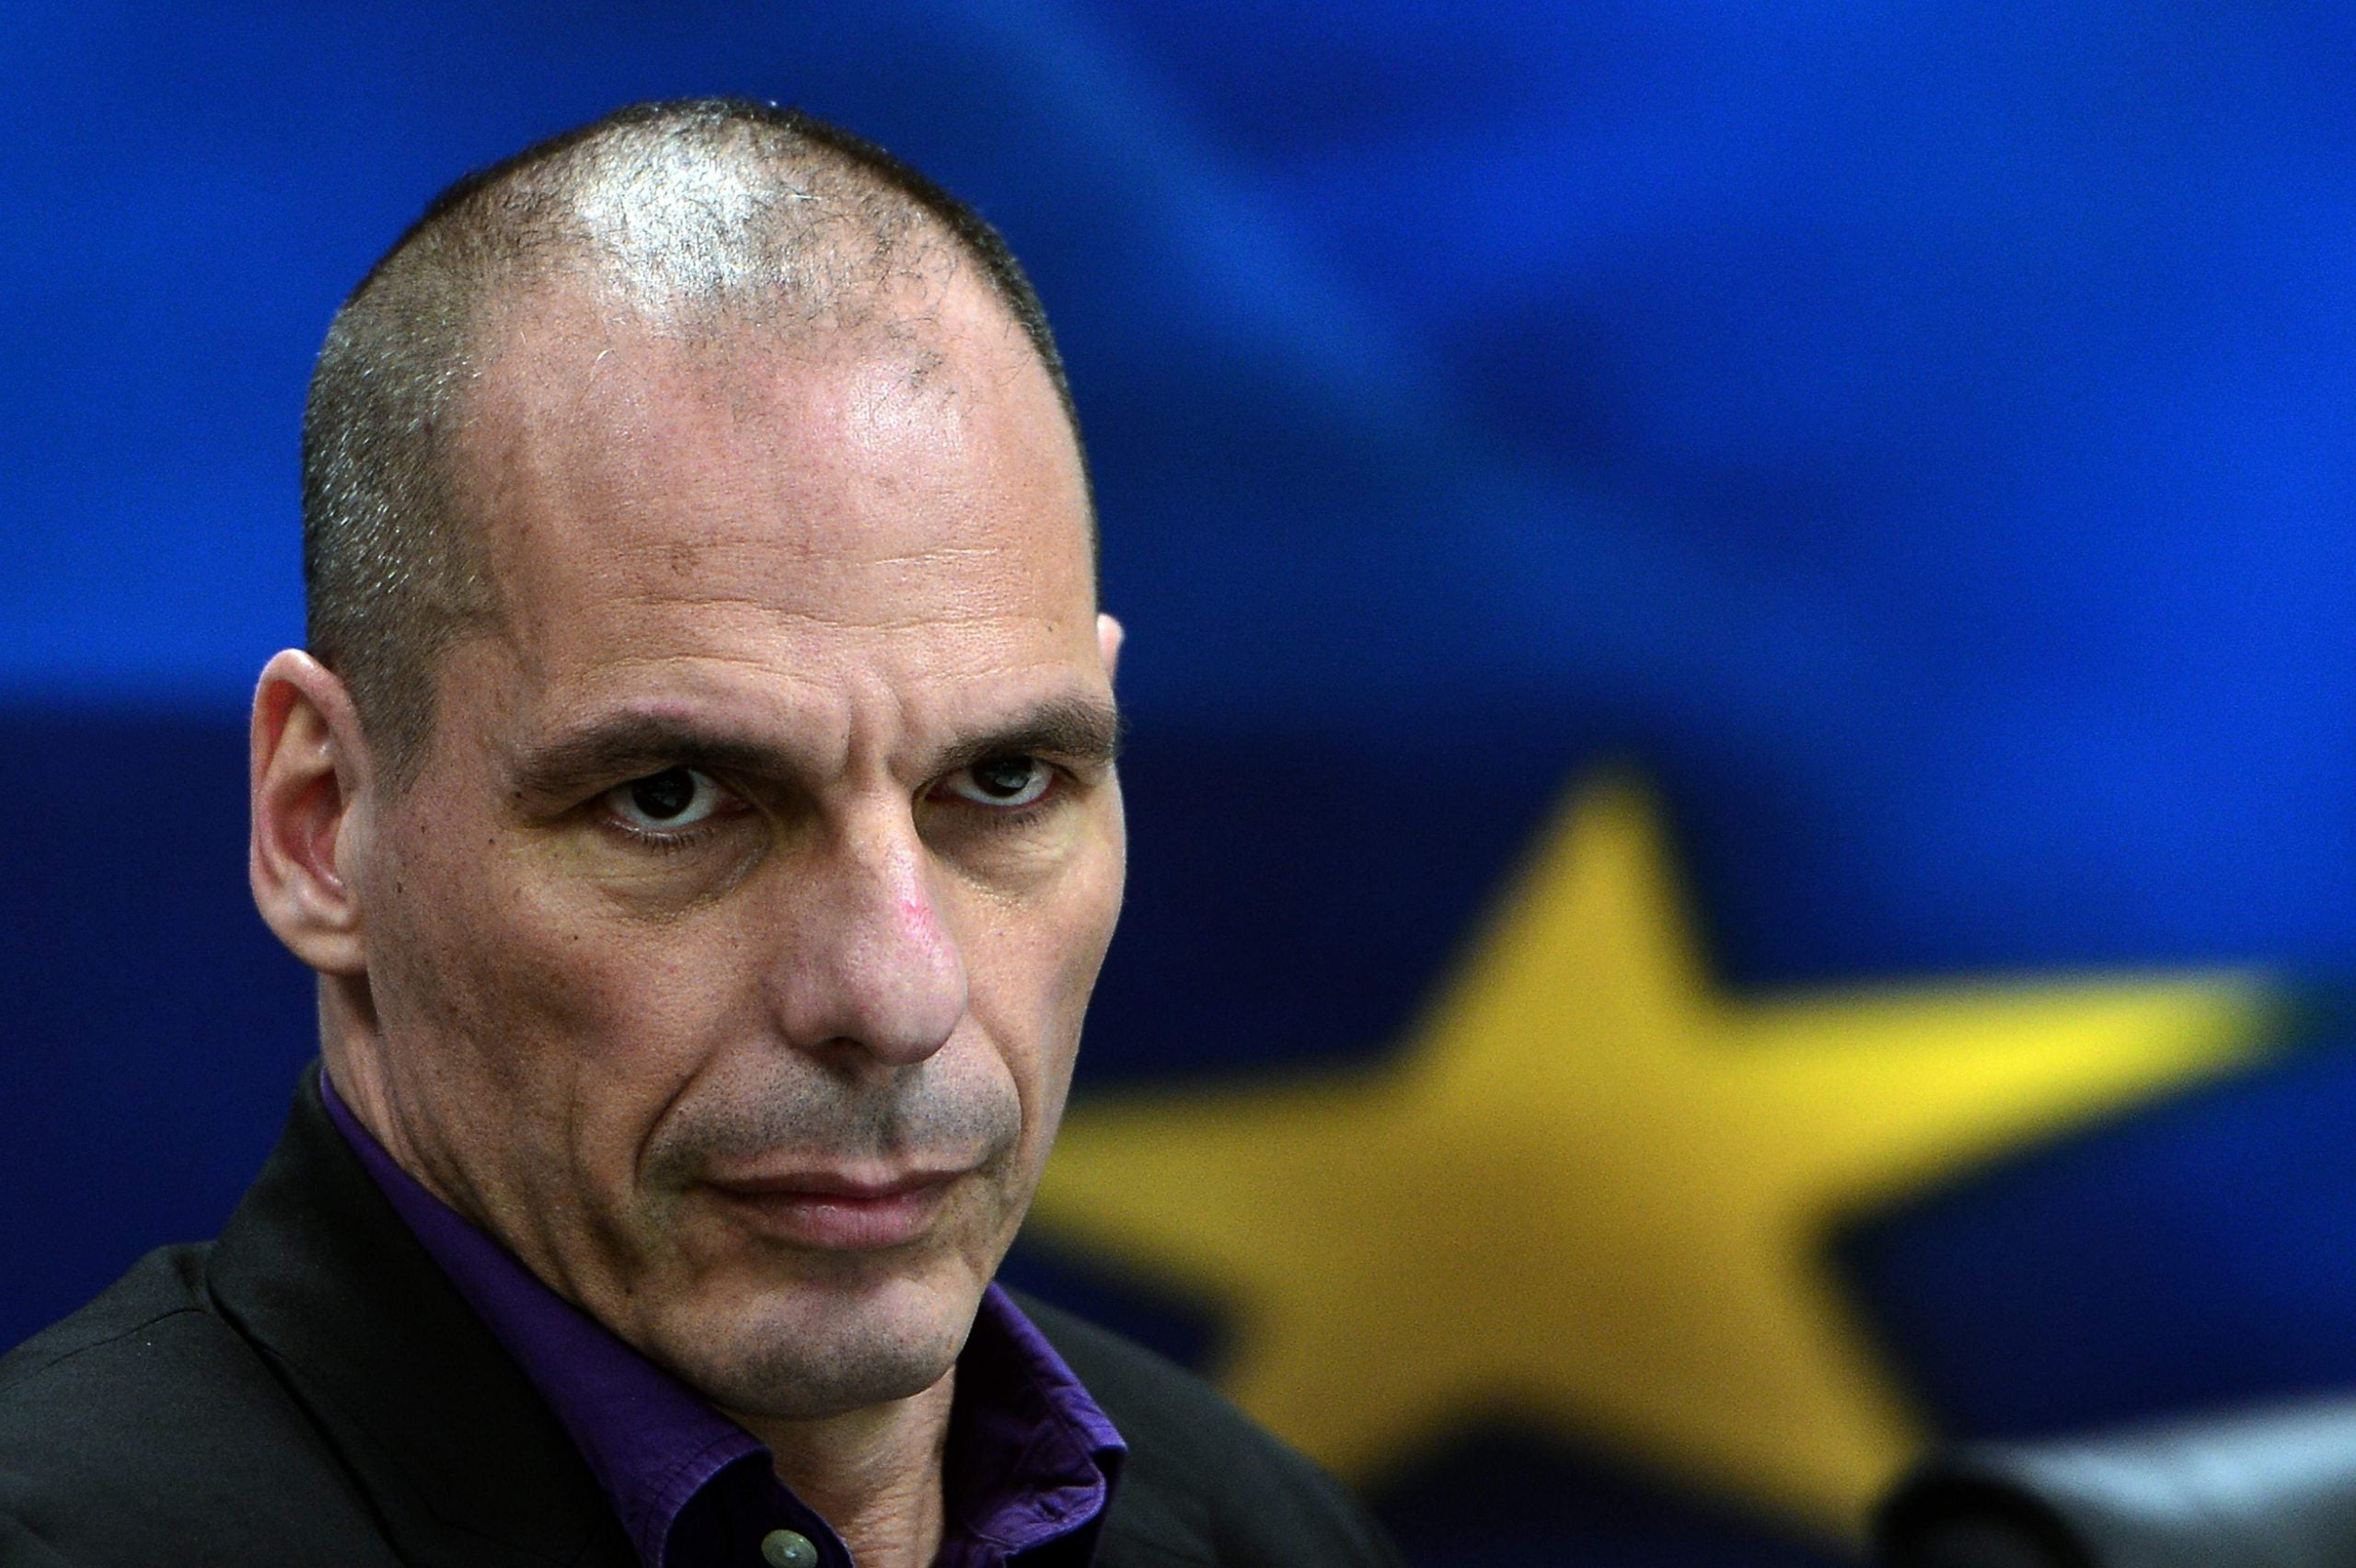 Yanis Varoufakis: After Donald Trump's awful victory, the left must be more ambitious